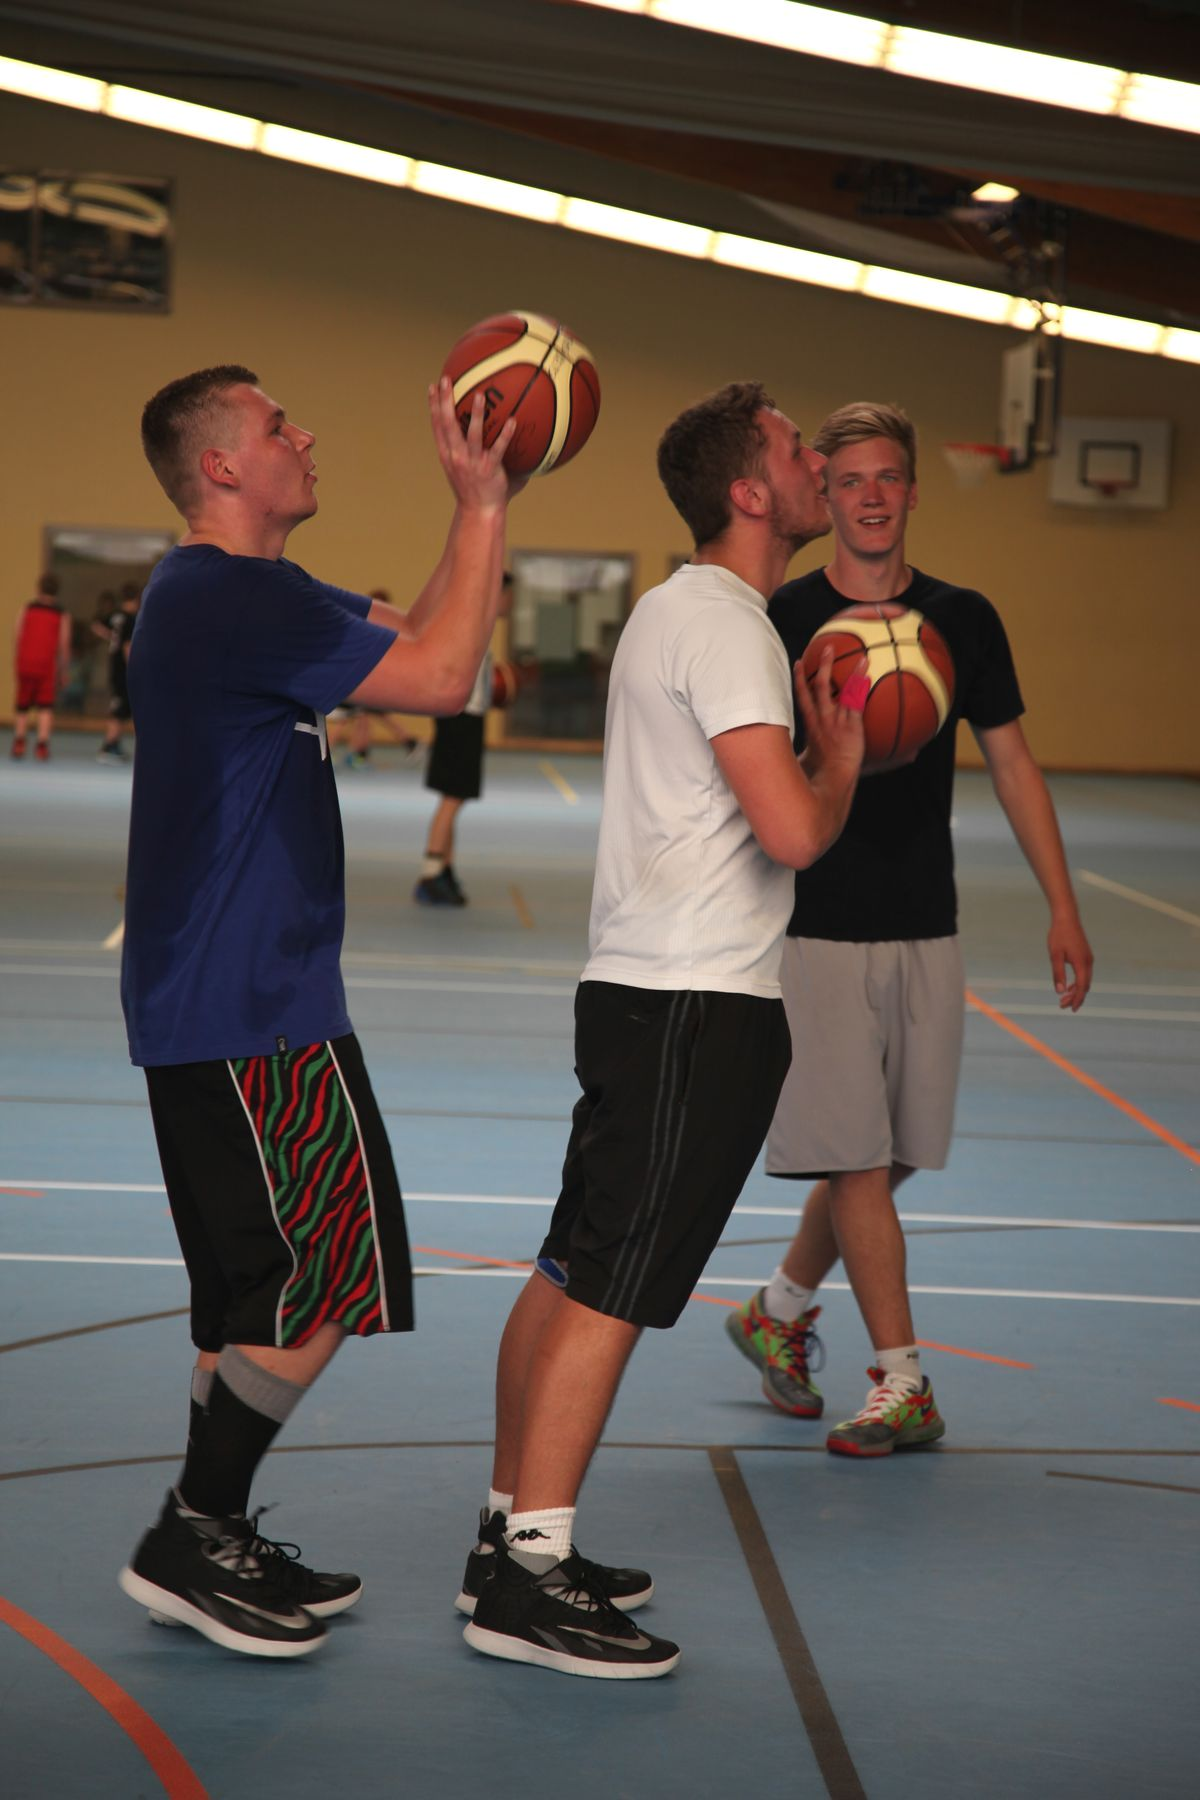 Sommer-Bball-Camp 2014_Tag 1 (19)